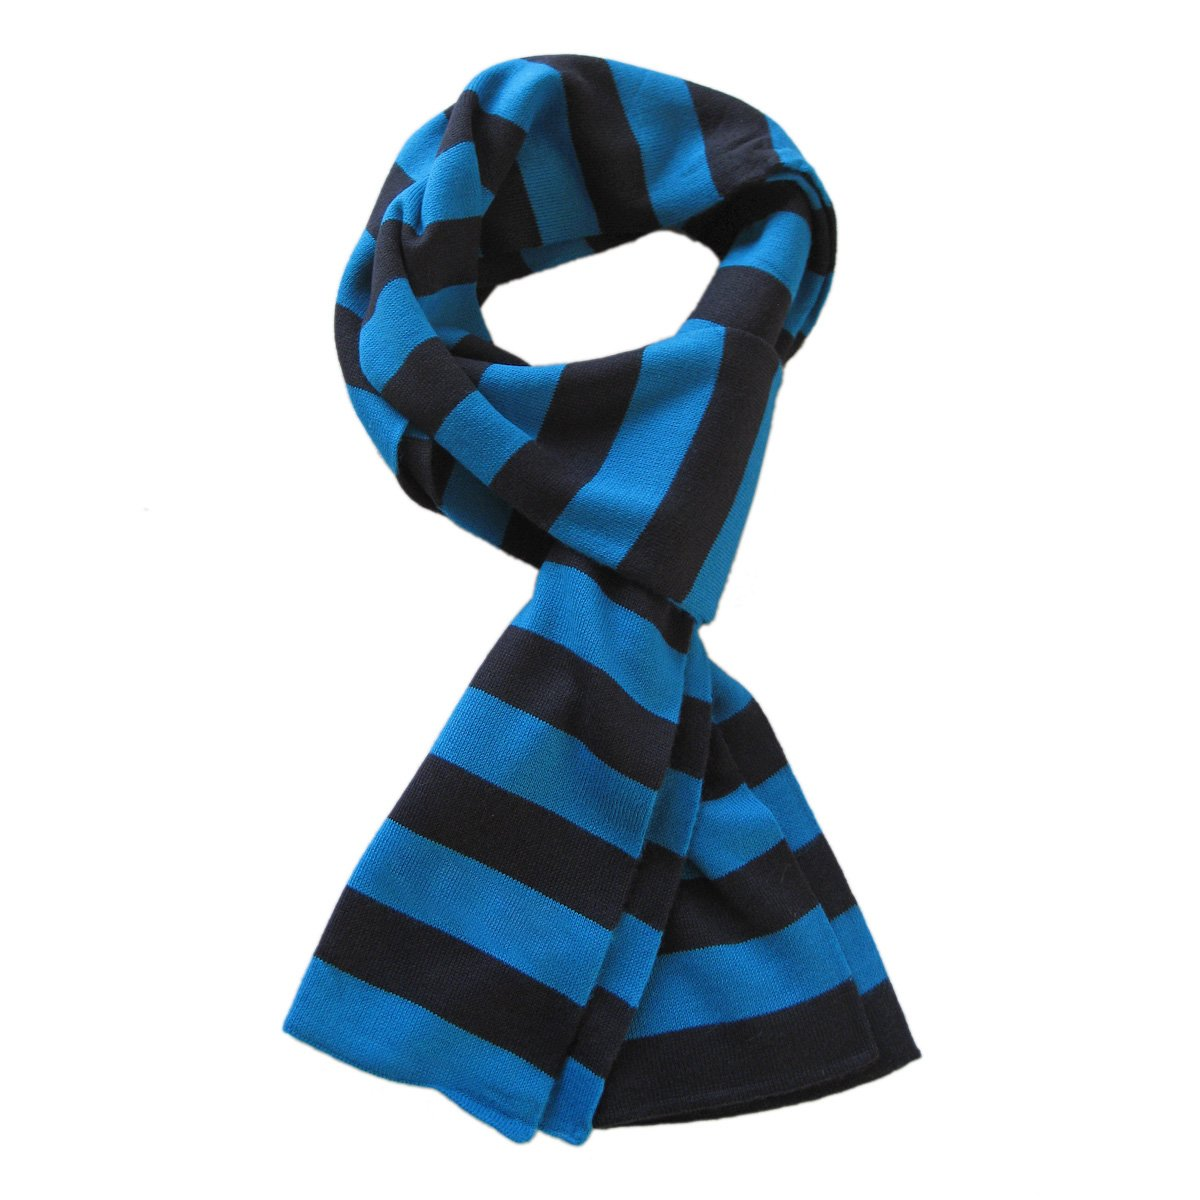 Premium Soft Knit Striped Scarf - Different Colors Available (Blue & Black)